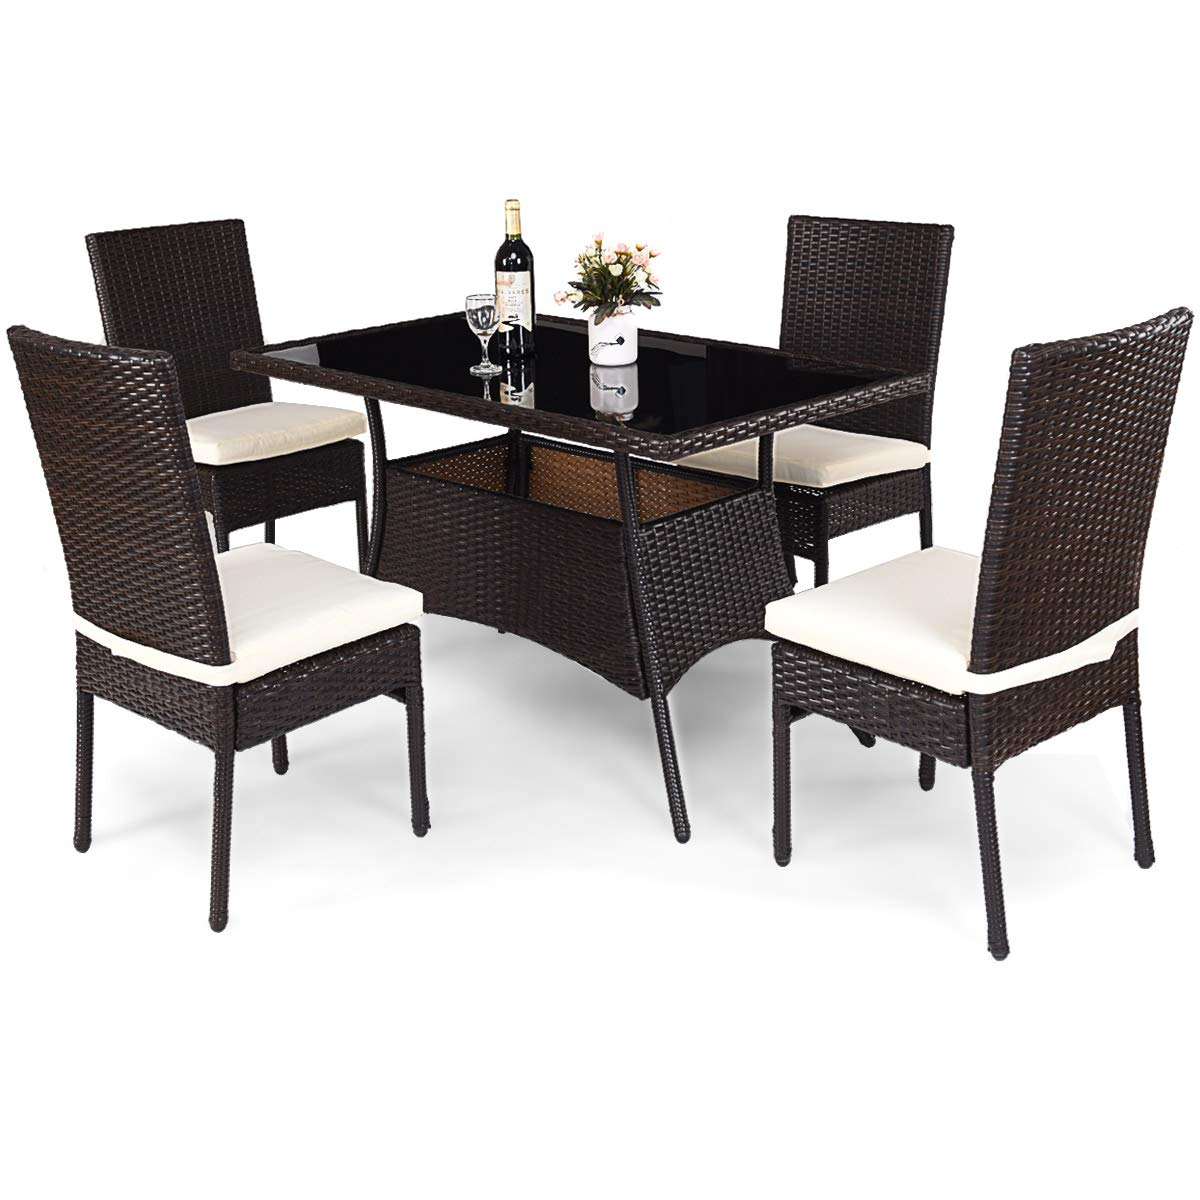 Tangkula Patio Furniture, 5 pcs All Weather resistant Heavy Duty Wicker Dining Set